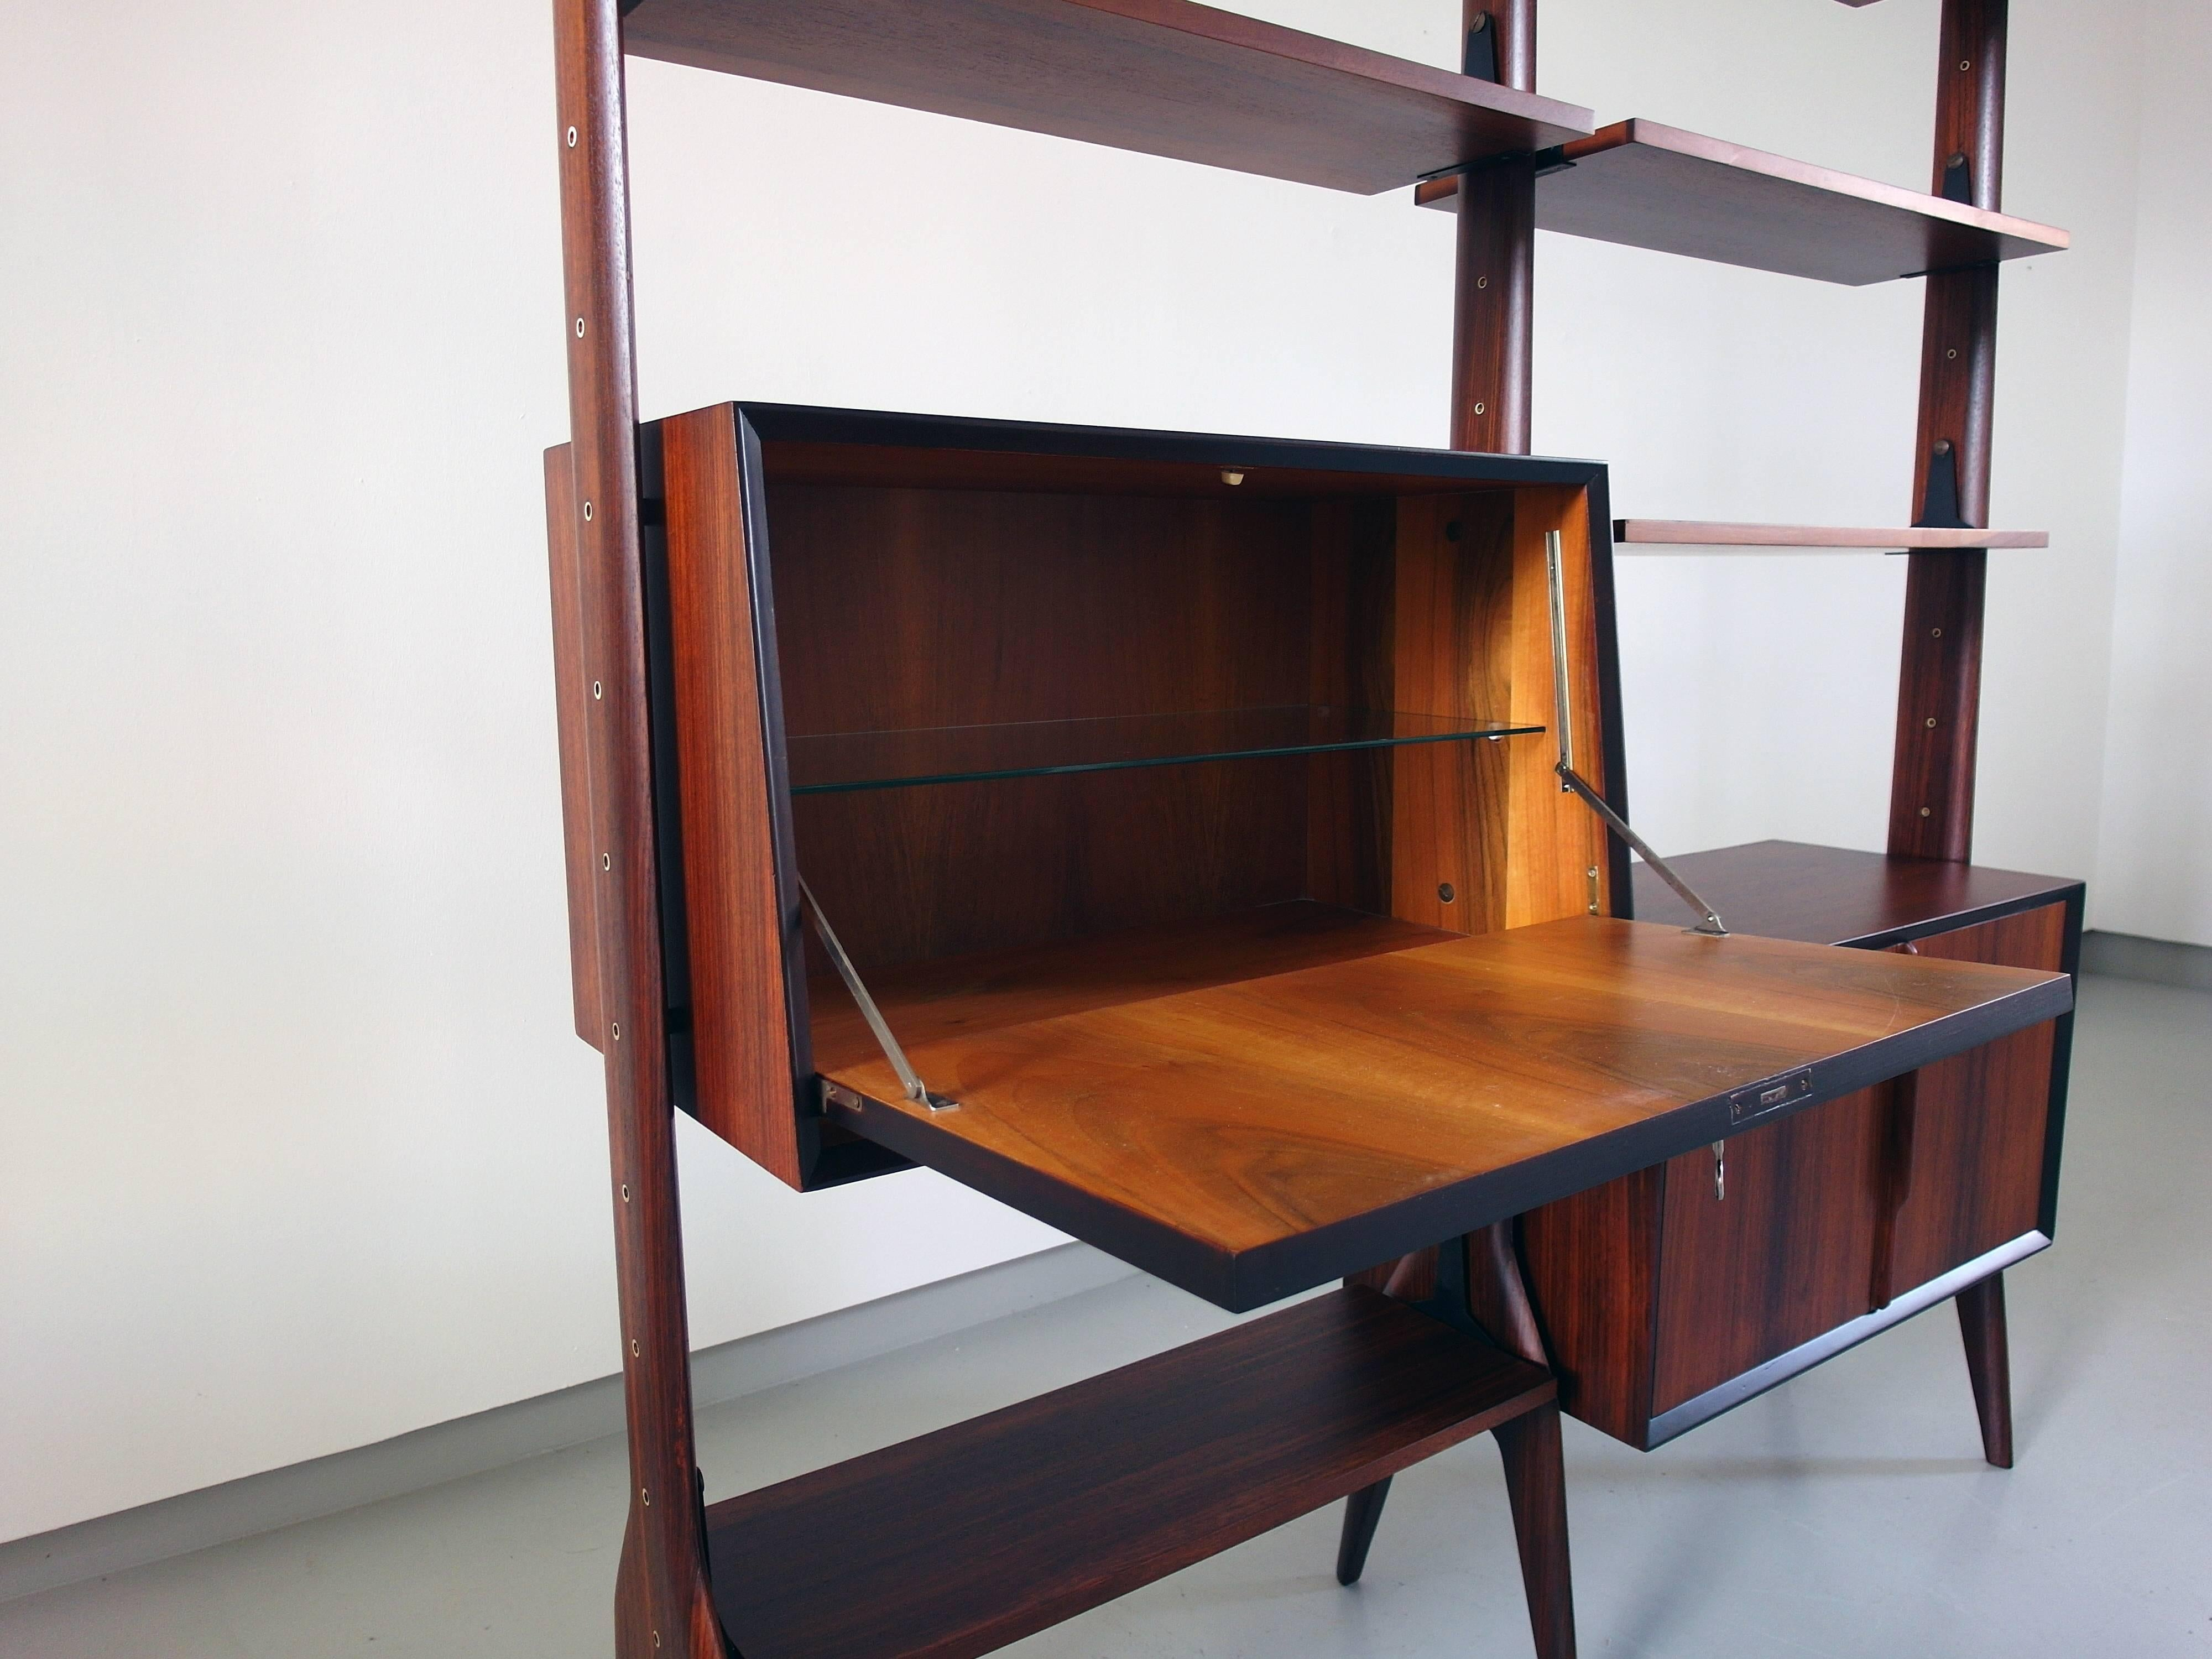 Italian Free Standing Shelving Unit With Sculptural Organic Details, Ca